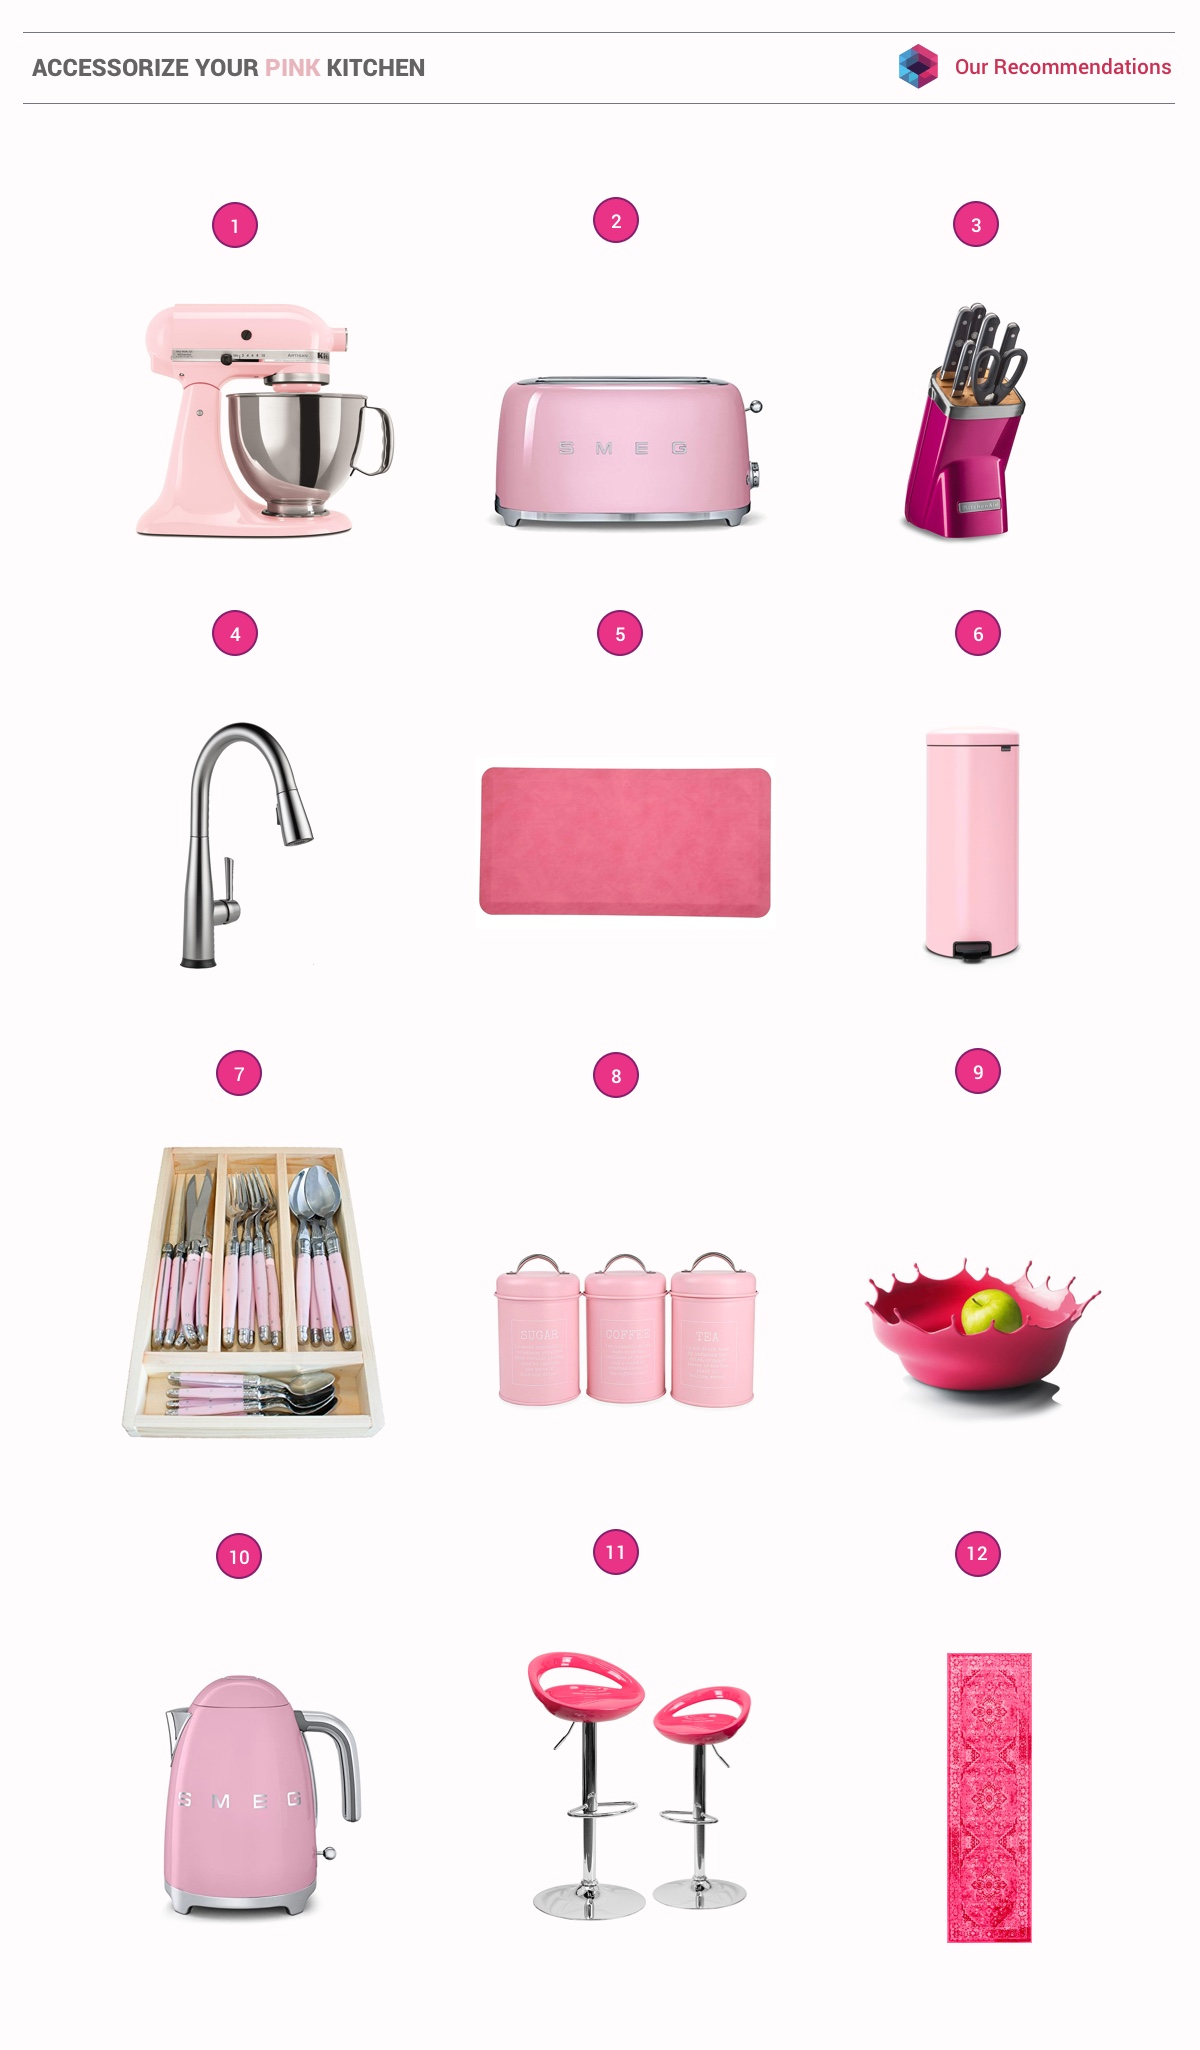 51 Inspirational Pink Kitchens With Tips & Accessories To Help You Design Yours images 49